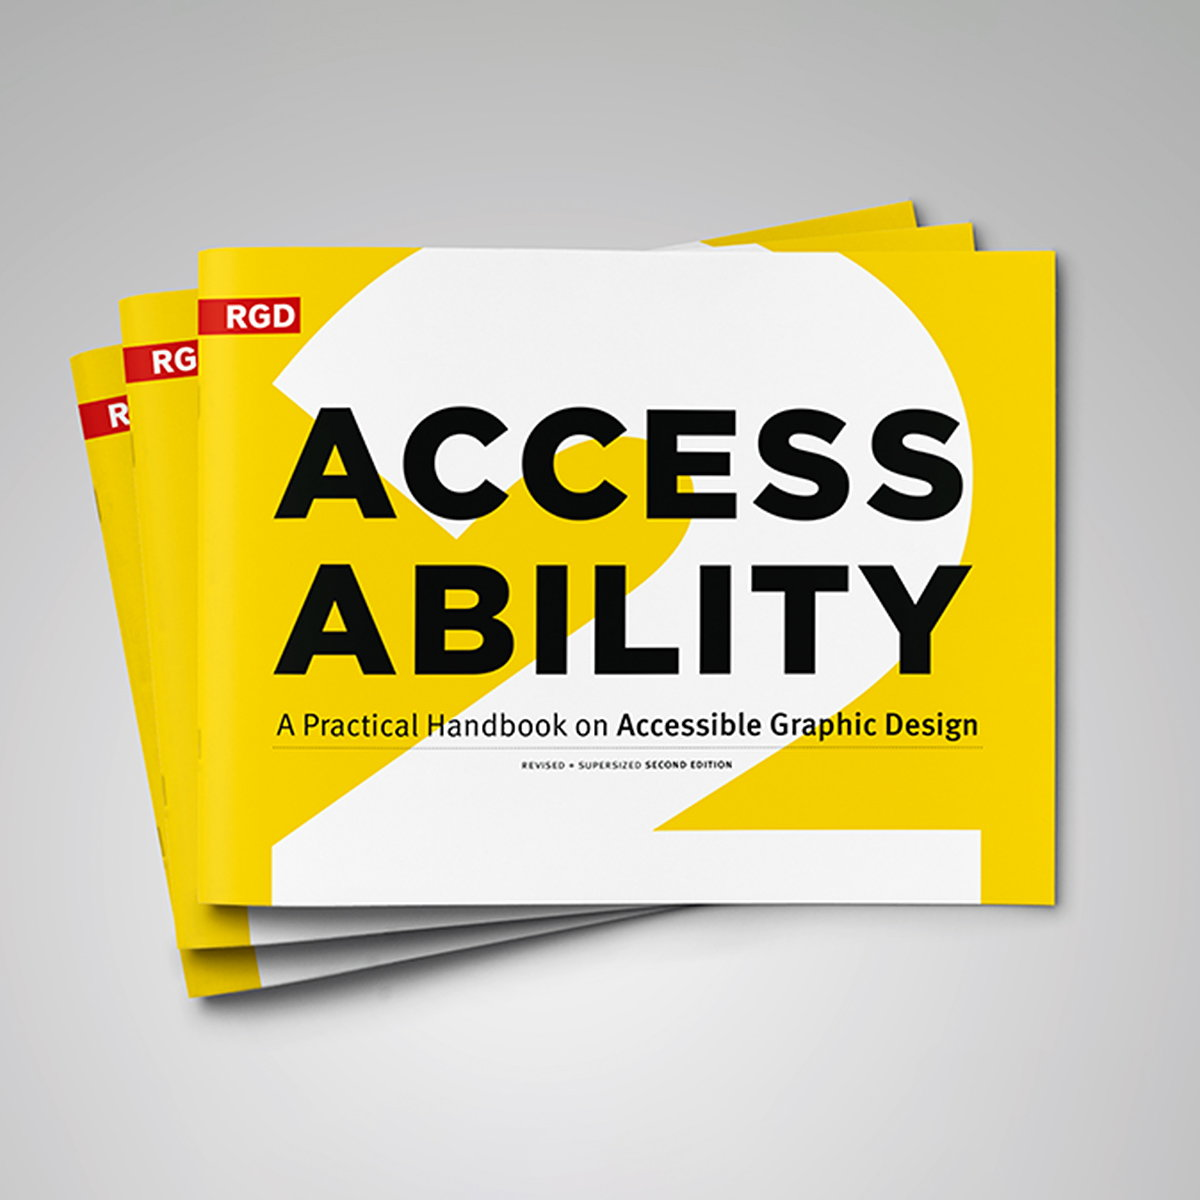 RGD Releases Updated AccessAbility Handbook for Graphic Designers